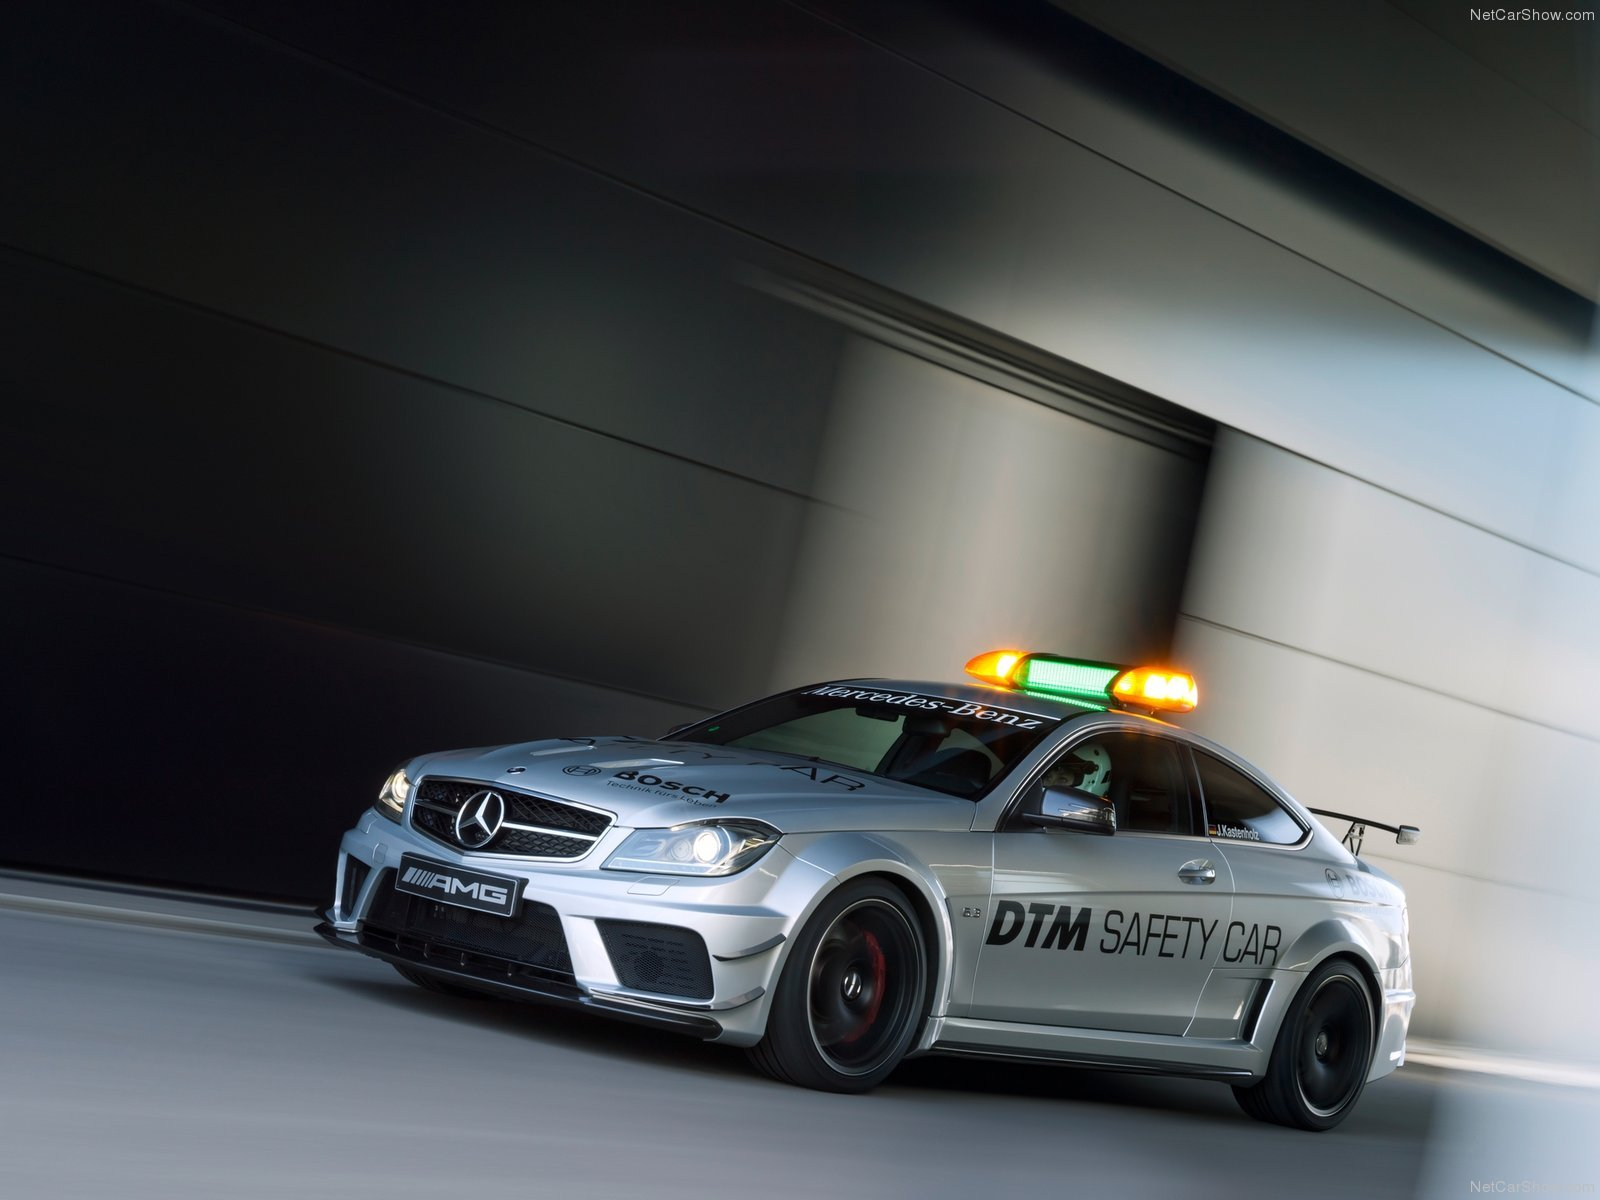 2019 Mercedes Benz C63 AMG DTM Safety Car photo - 2